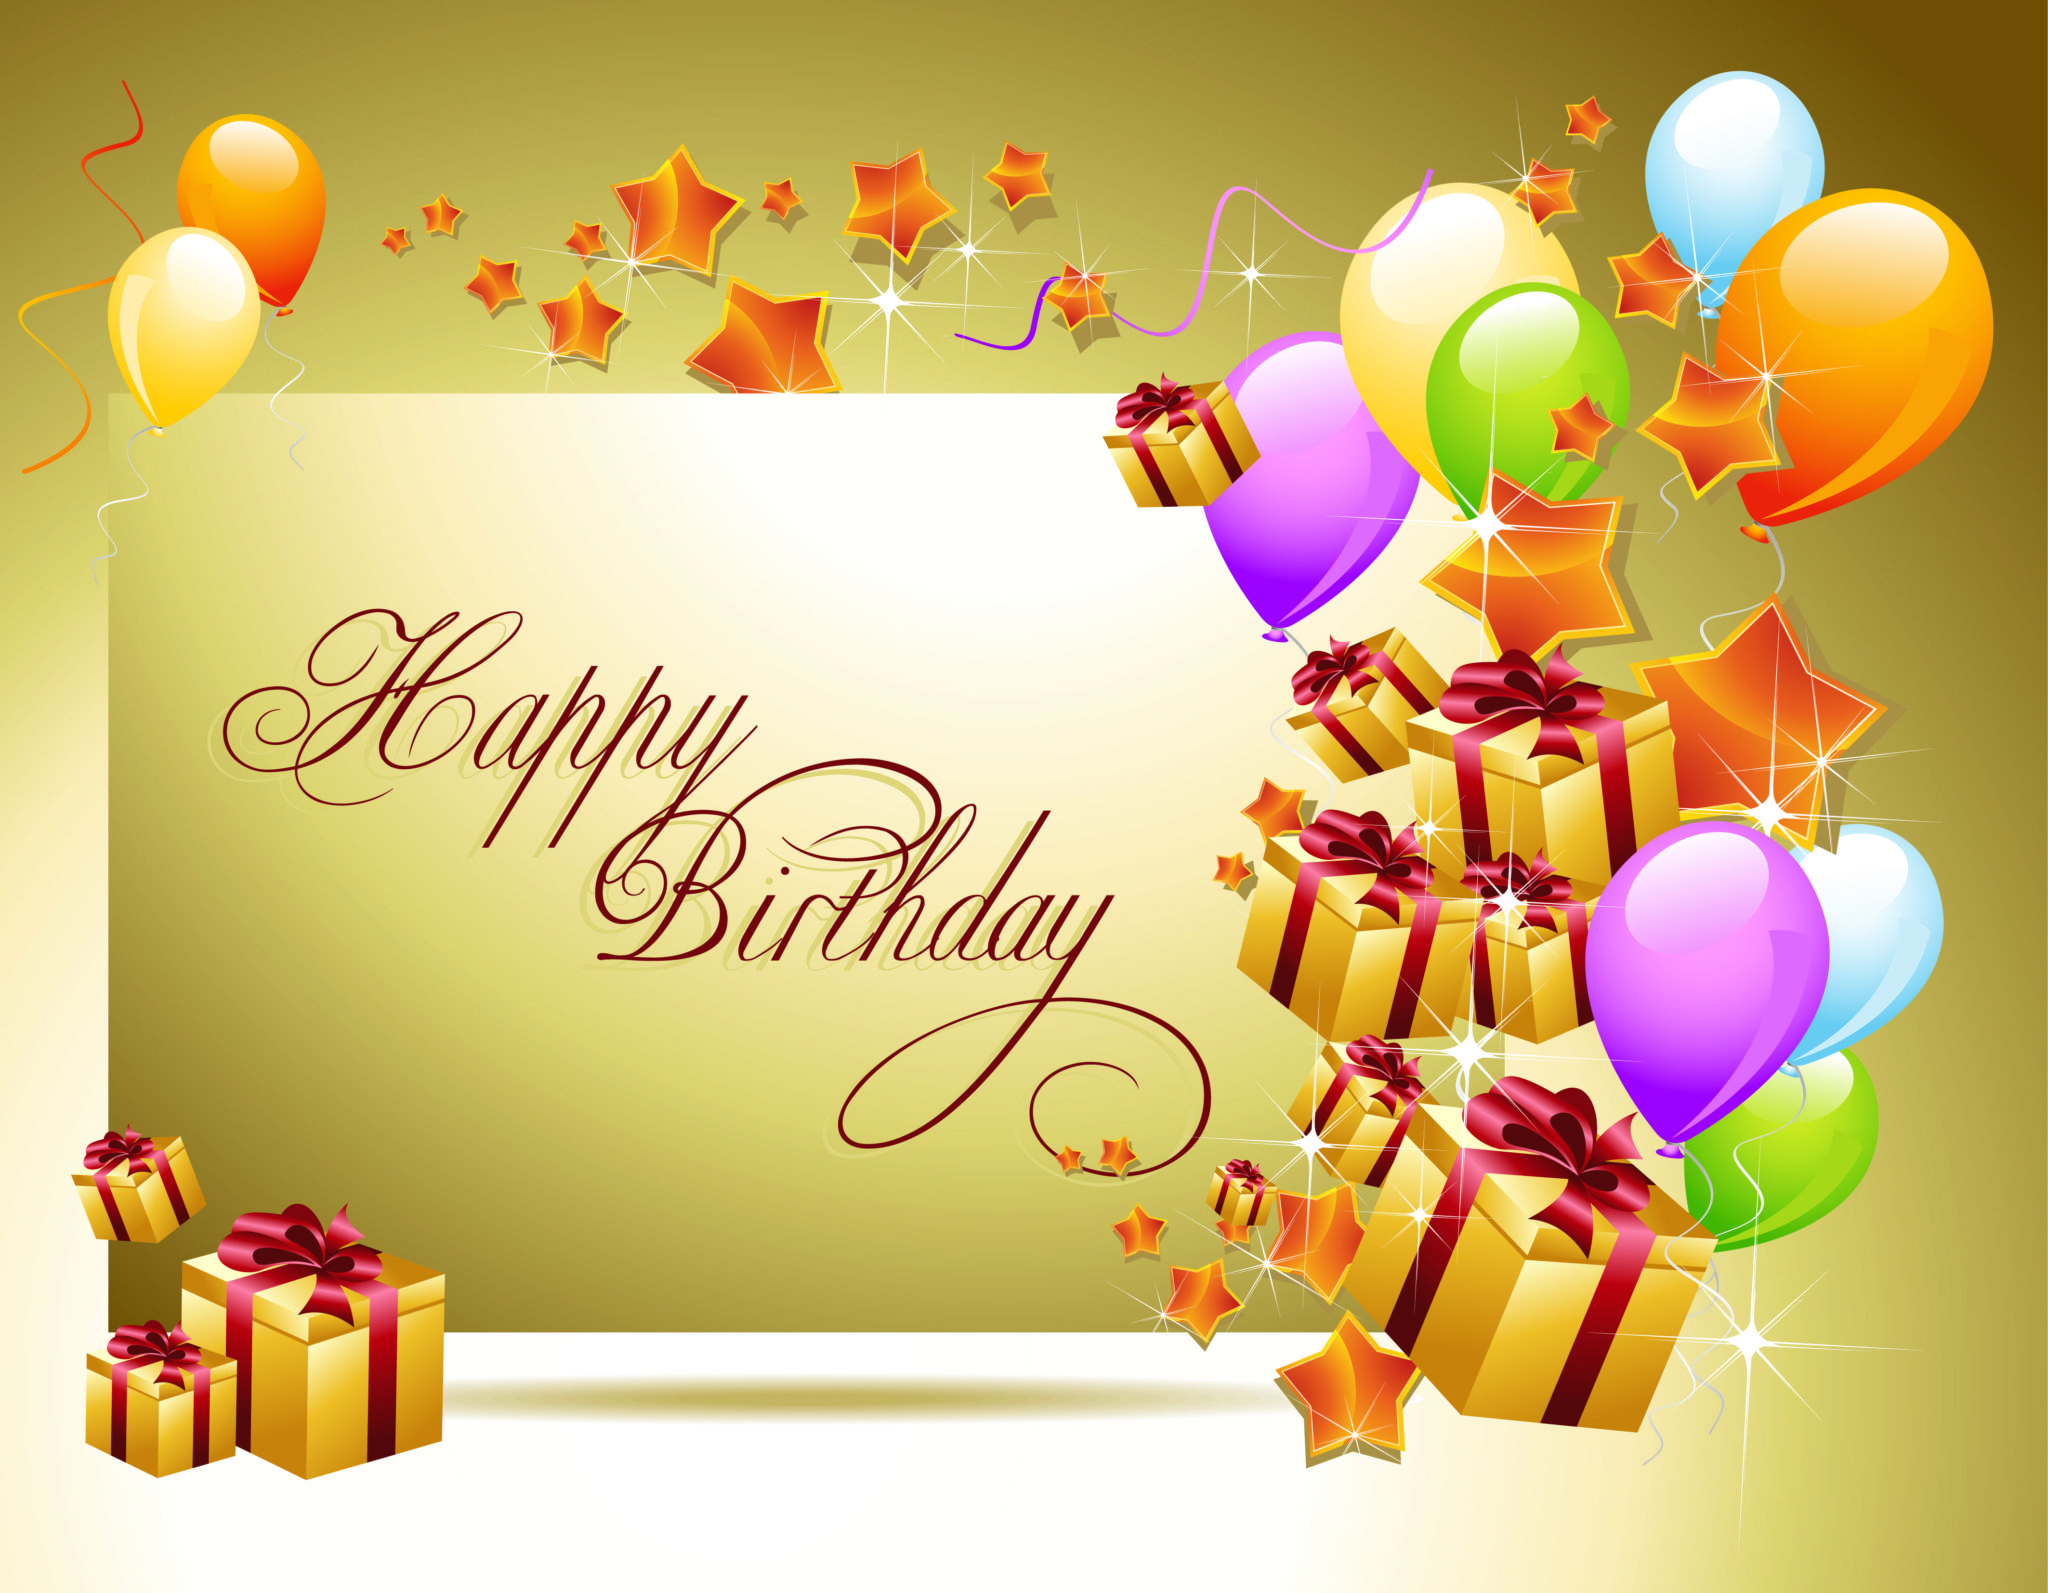 Happy Birthday Wishes – Wishes for Happy Birthday